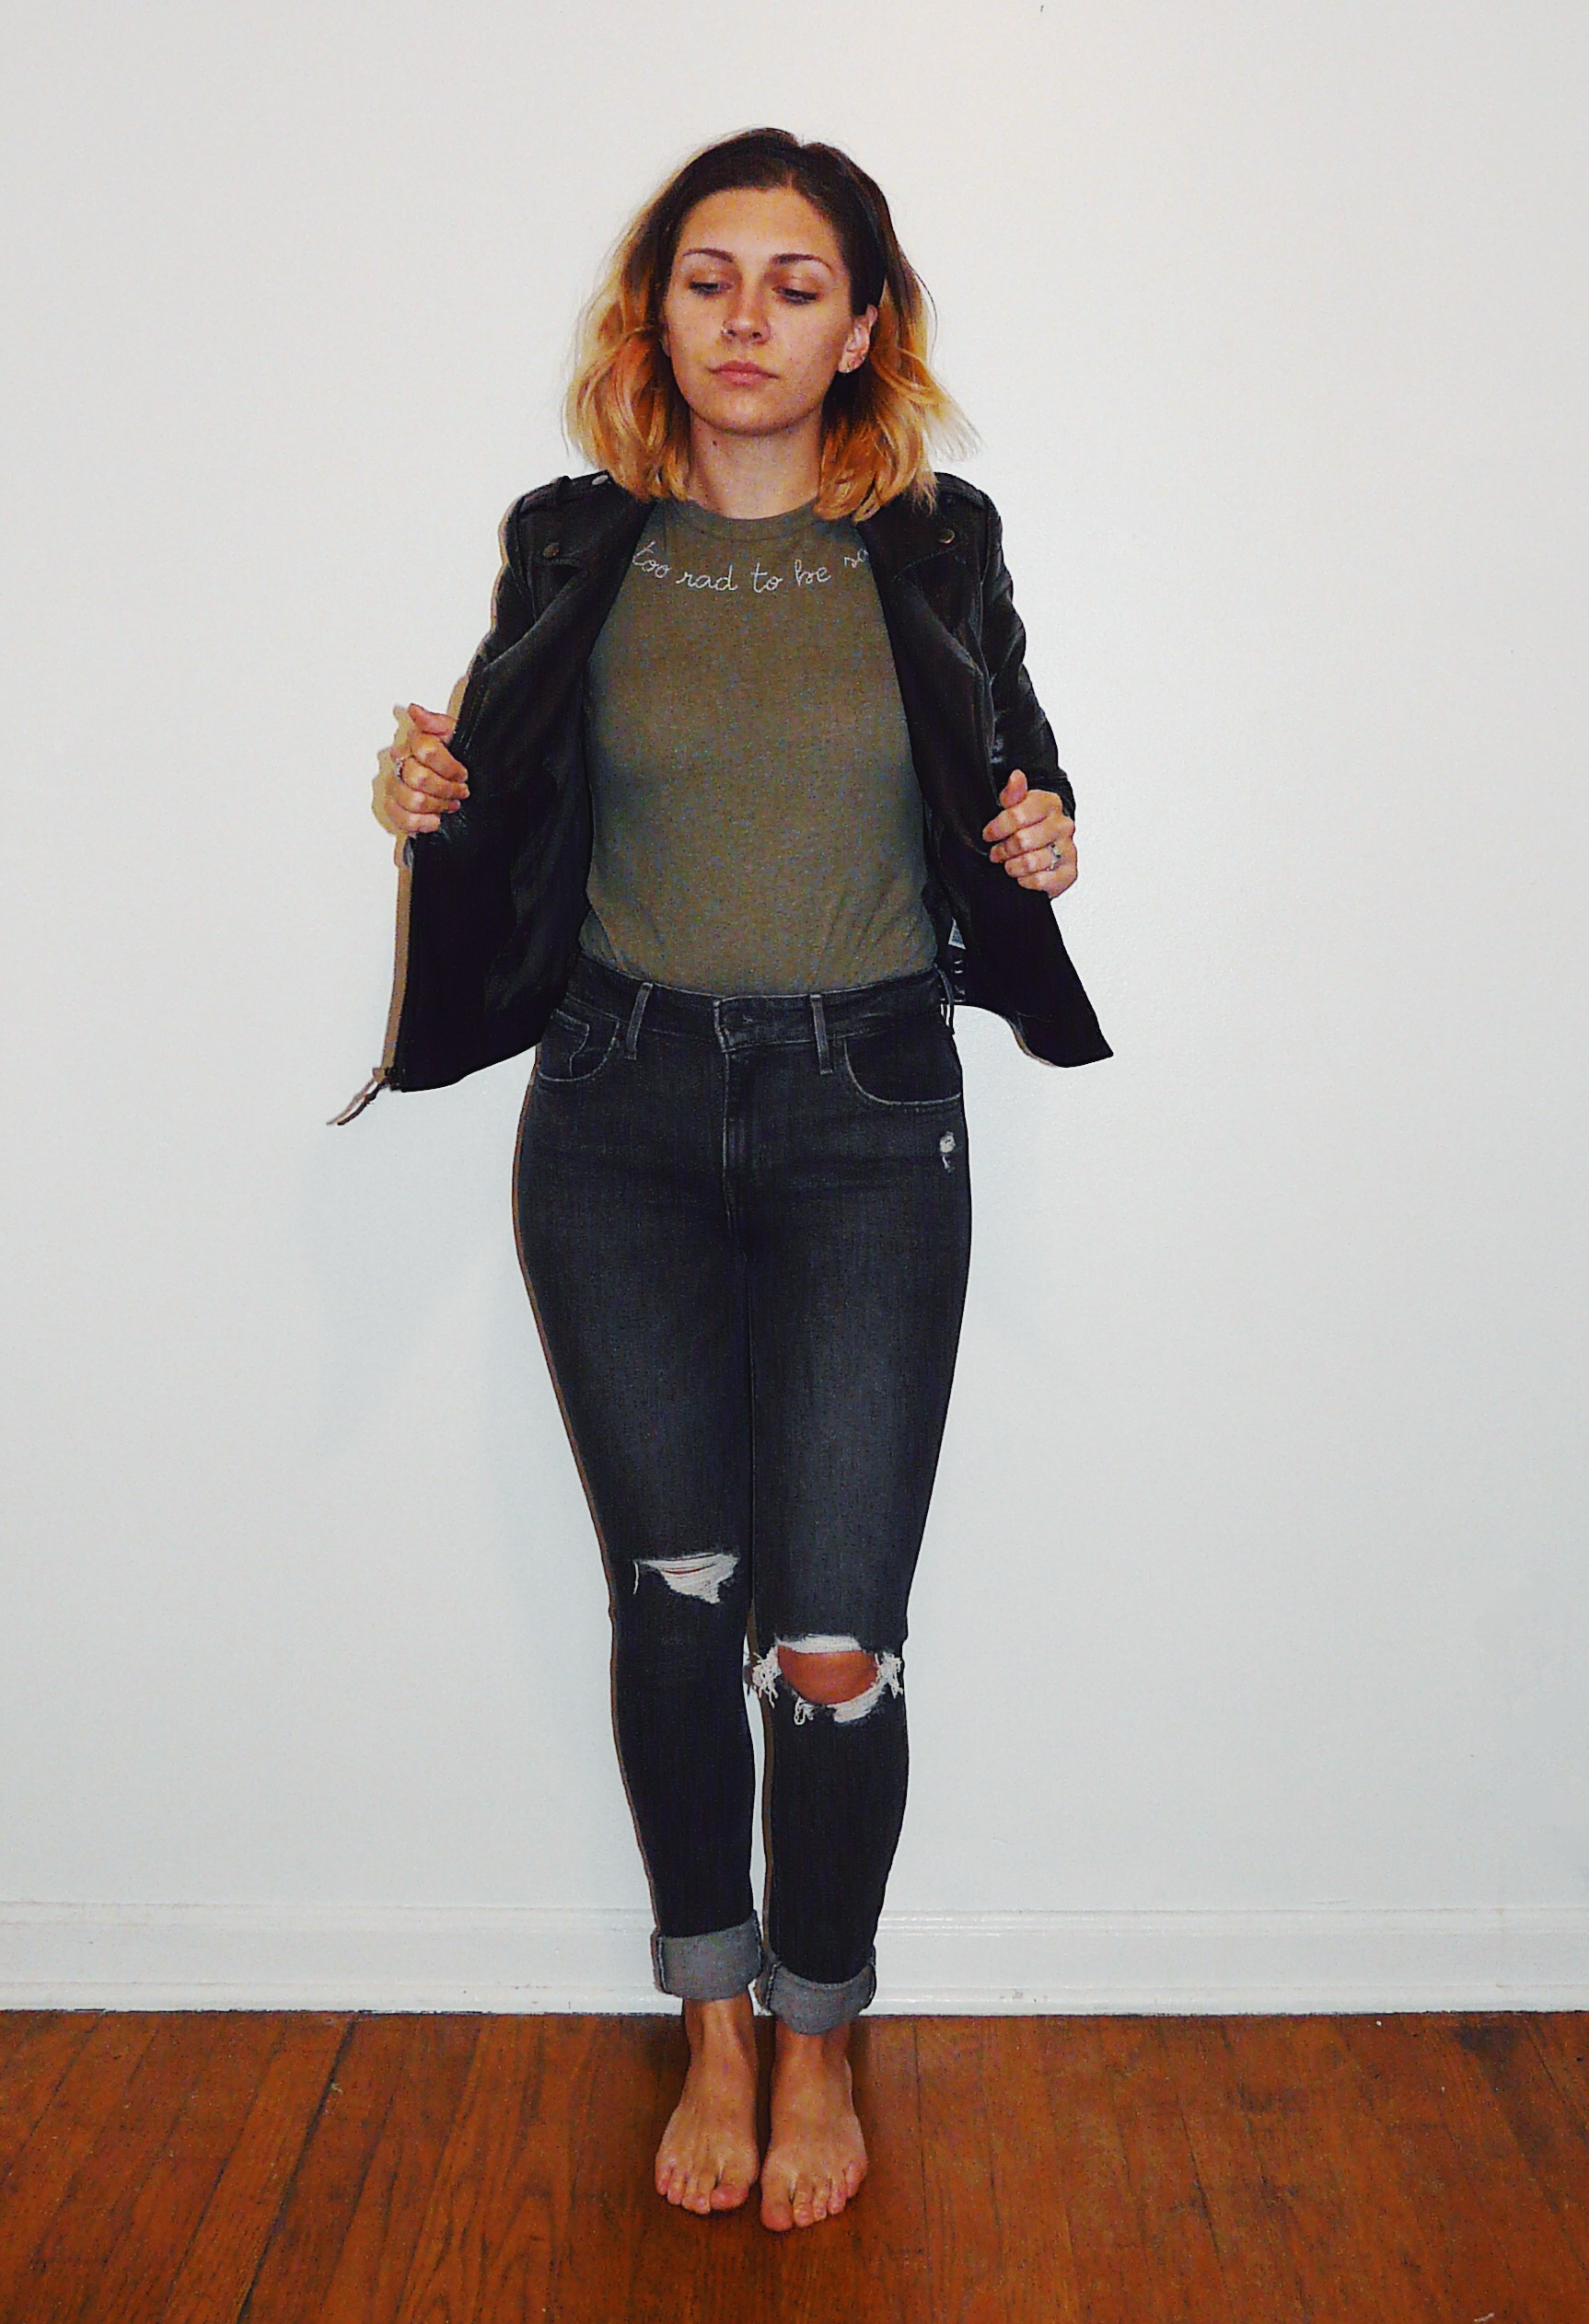 t-shirt and leather jacket style